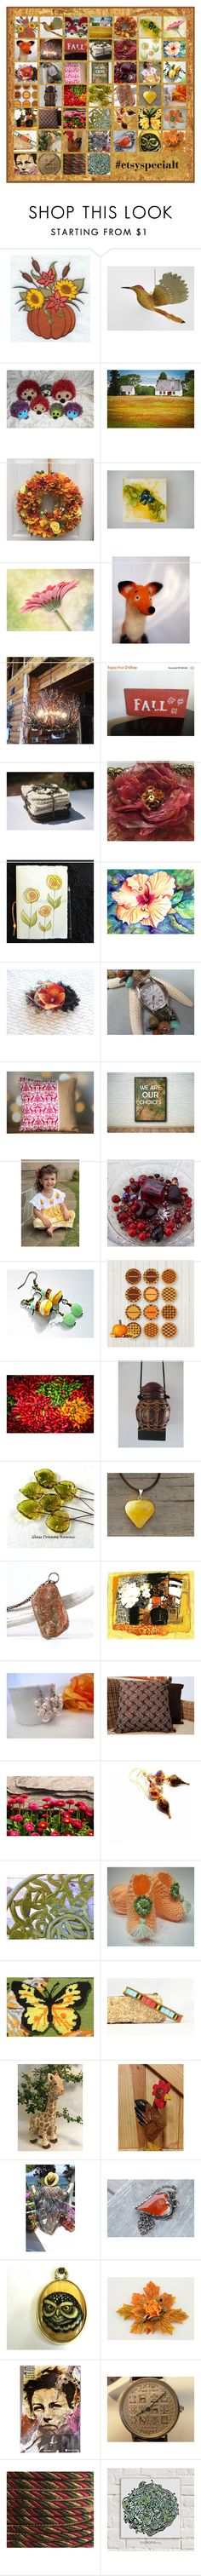 """""""Special(T) Selections"""" by rescuedofferings ❤ liked on Polyvore featuring Hostess, Ultimo, vintage, integrityTT and EtsySpecialT"""